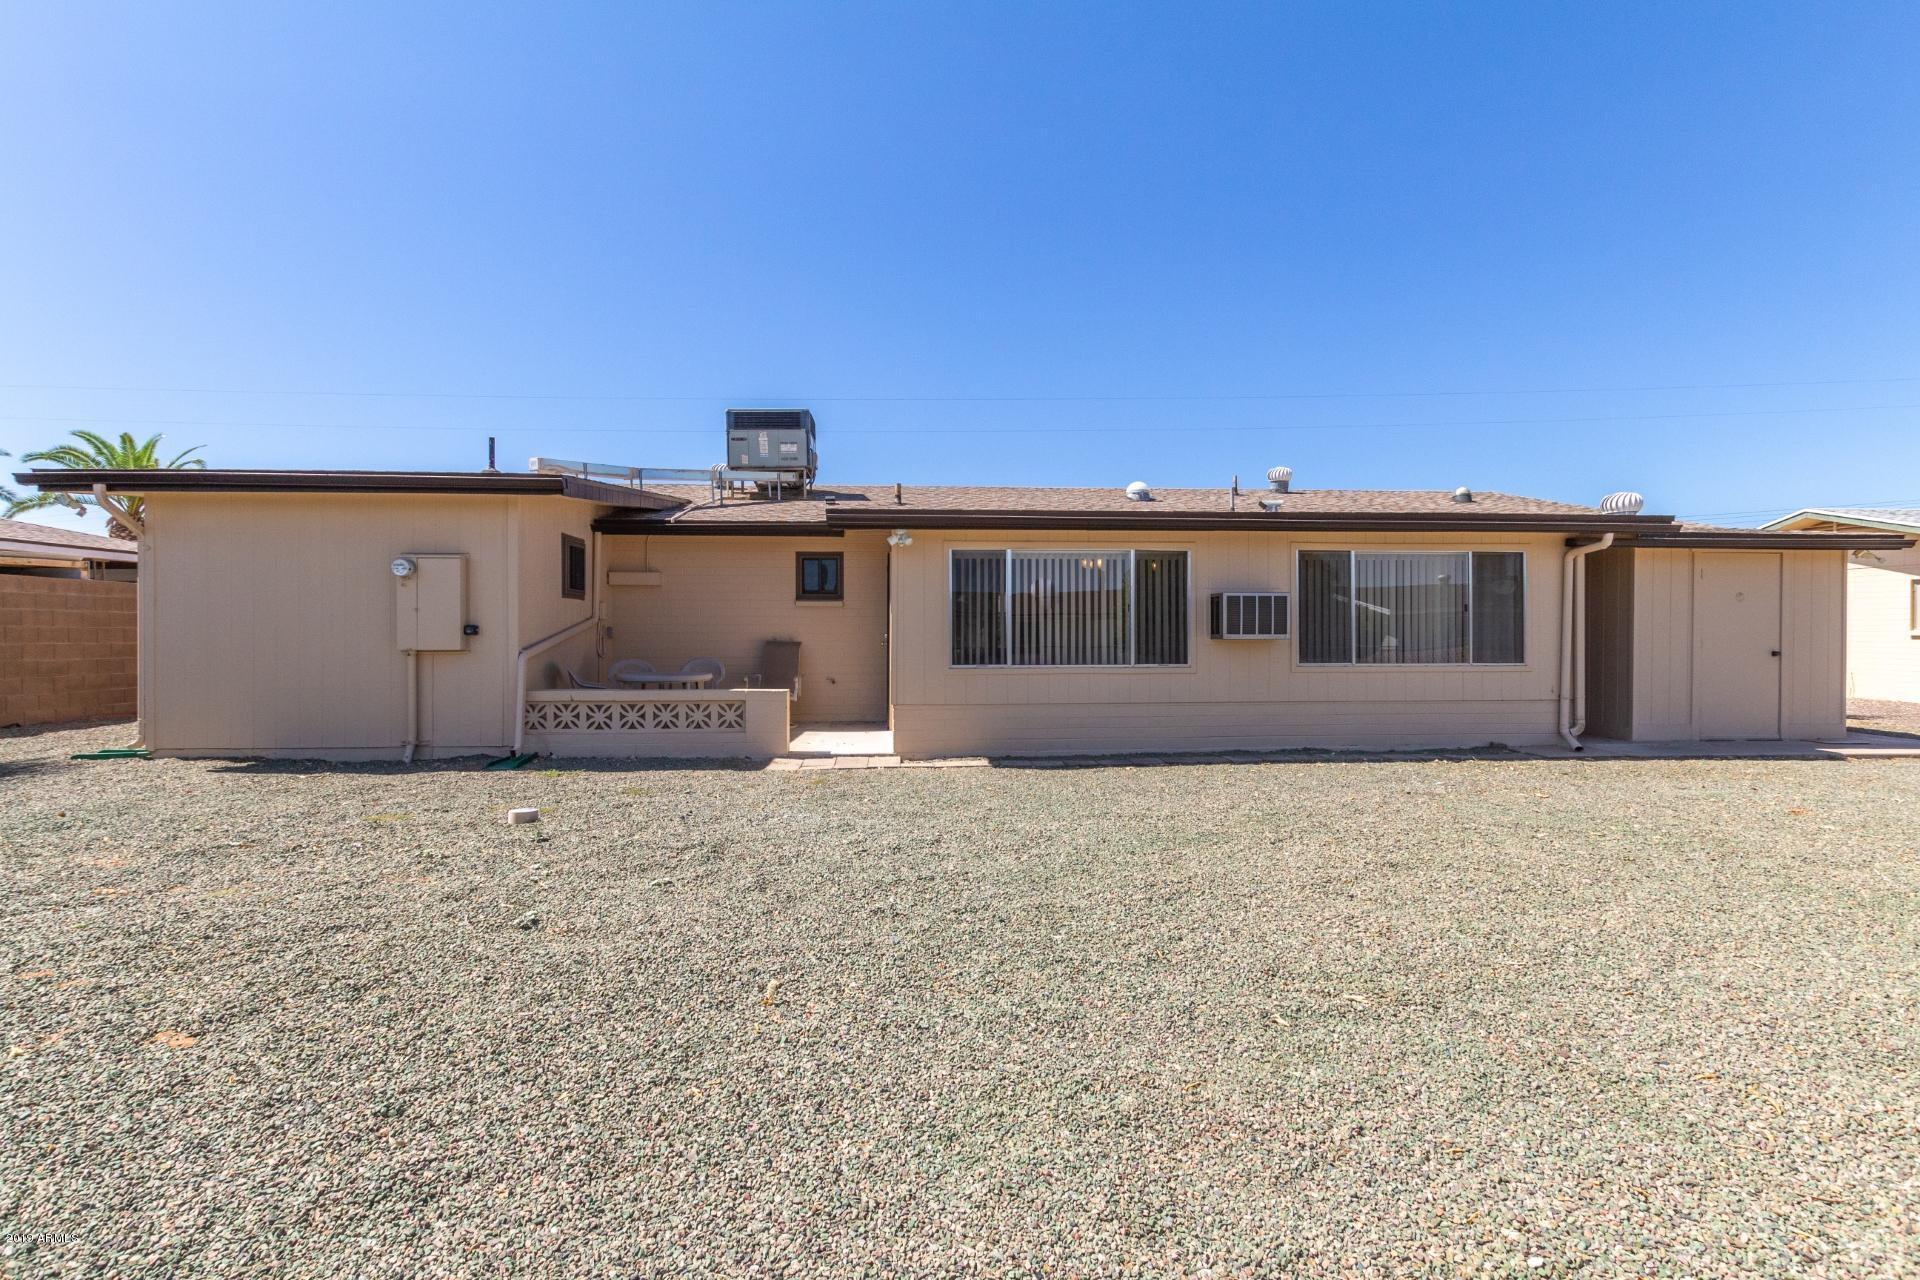 MLS 5941806 5312 E DECATUR Street, Mesa, AZ 85205 Mesa AZ Dreamland Villa